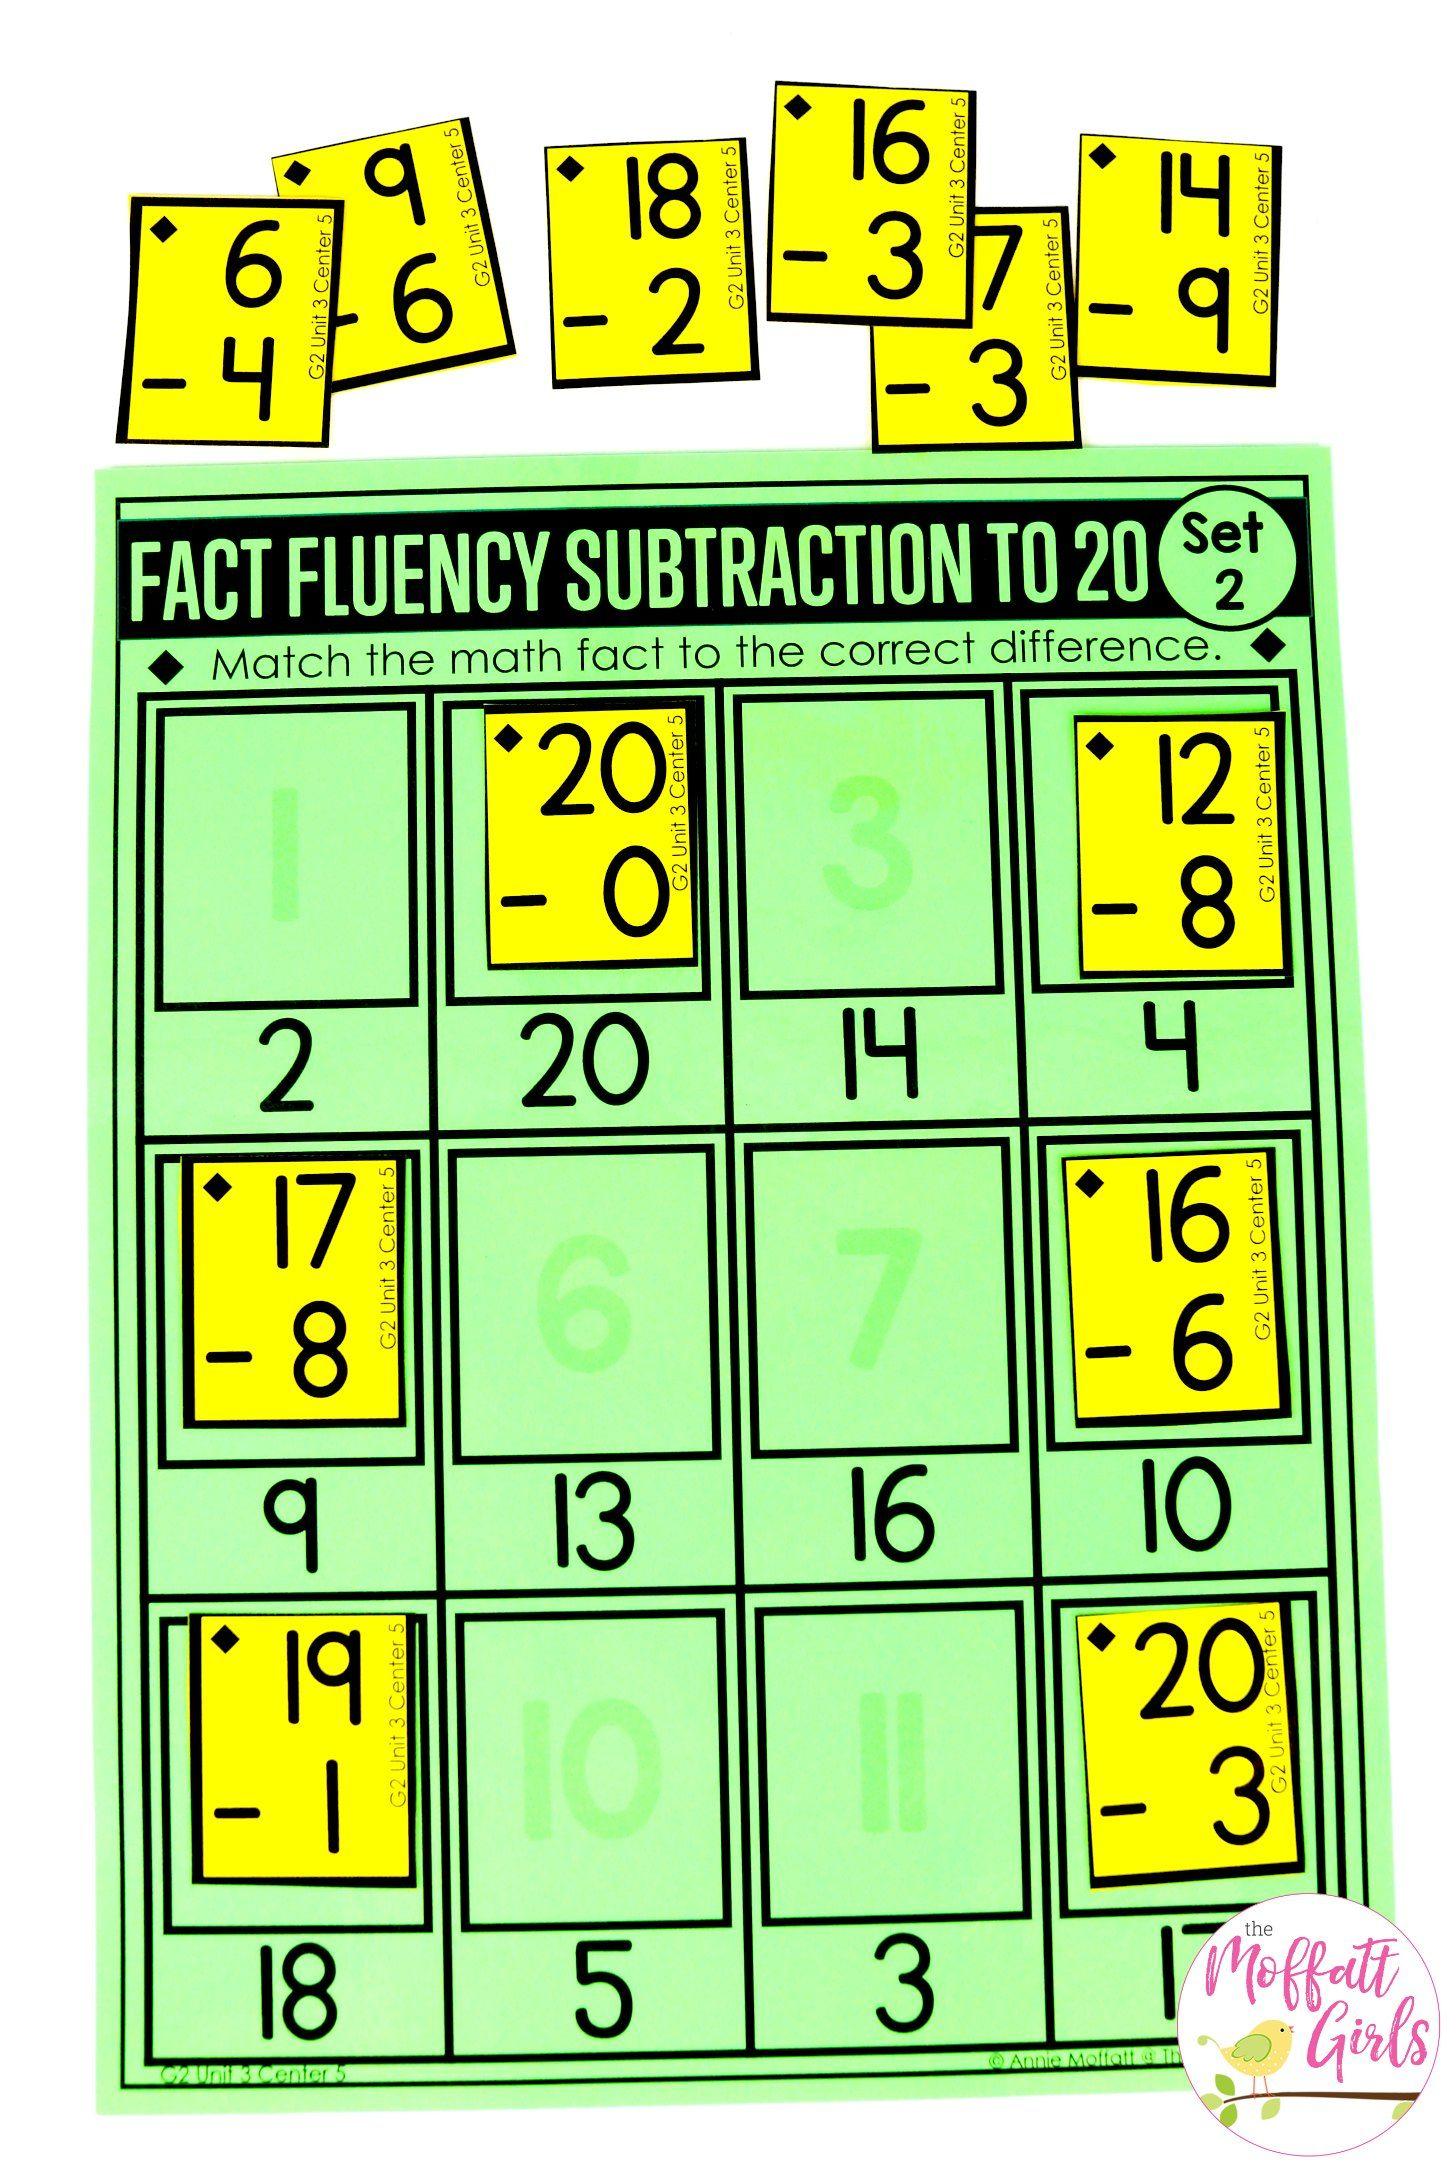 Addition And Subtraction Fluency Up To 100 For 2nd Grade Math Facts Comprehension Lesson Plans Subtraction [ 2172 x 1448 Pixel ]